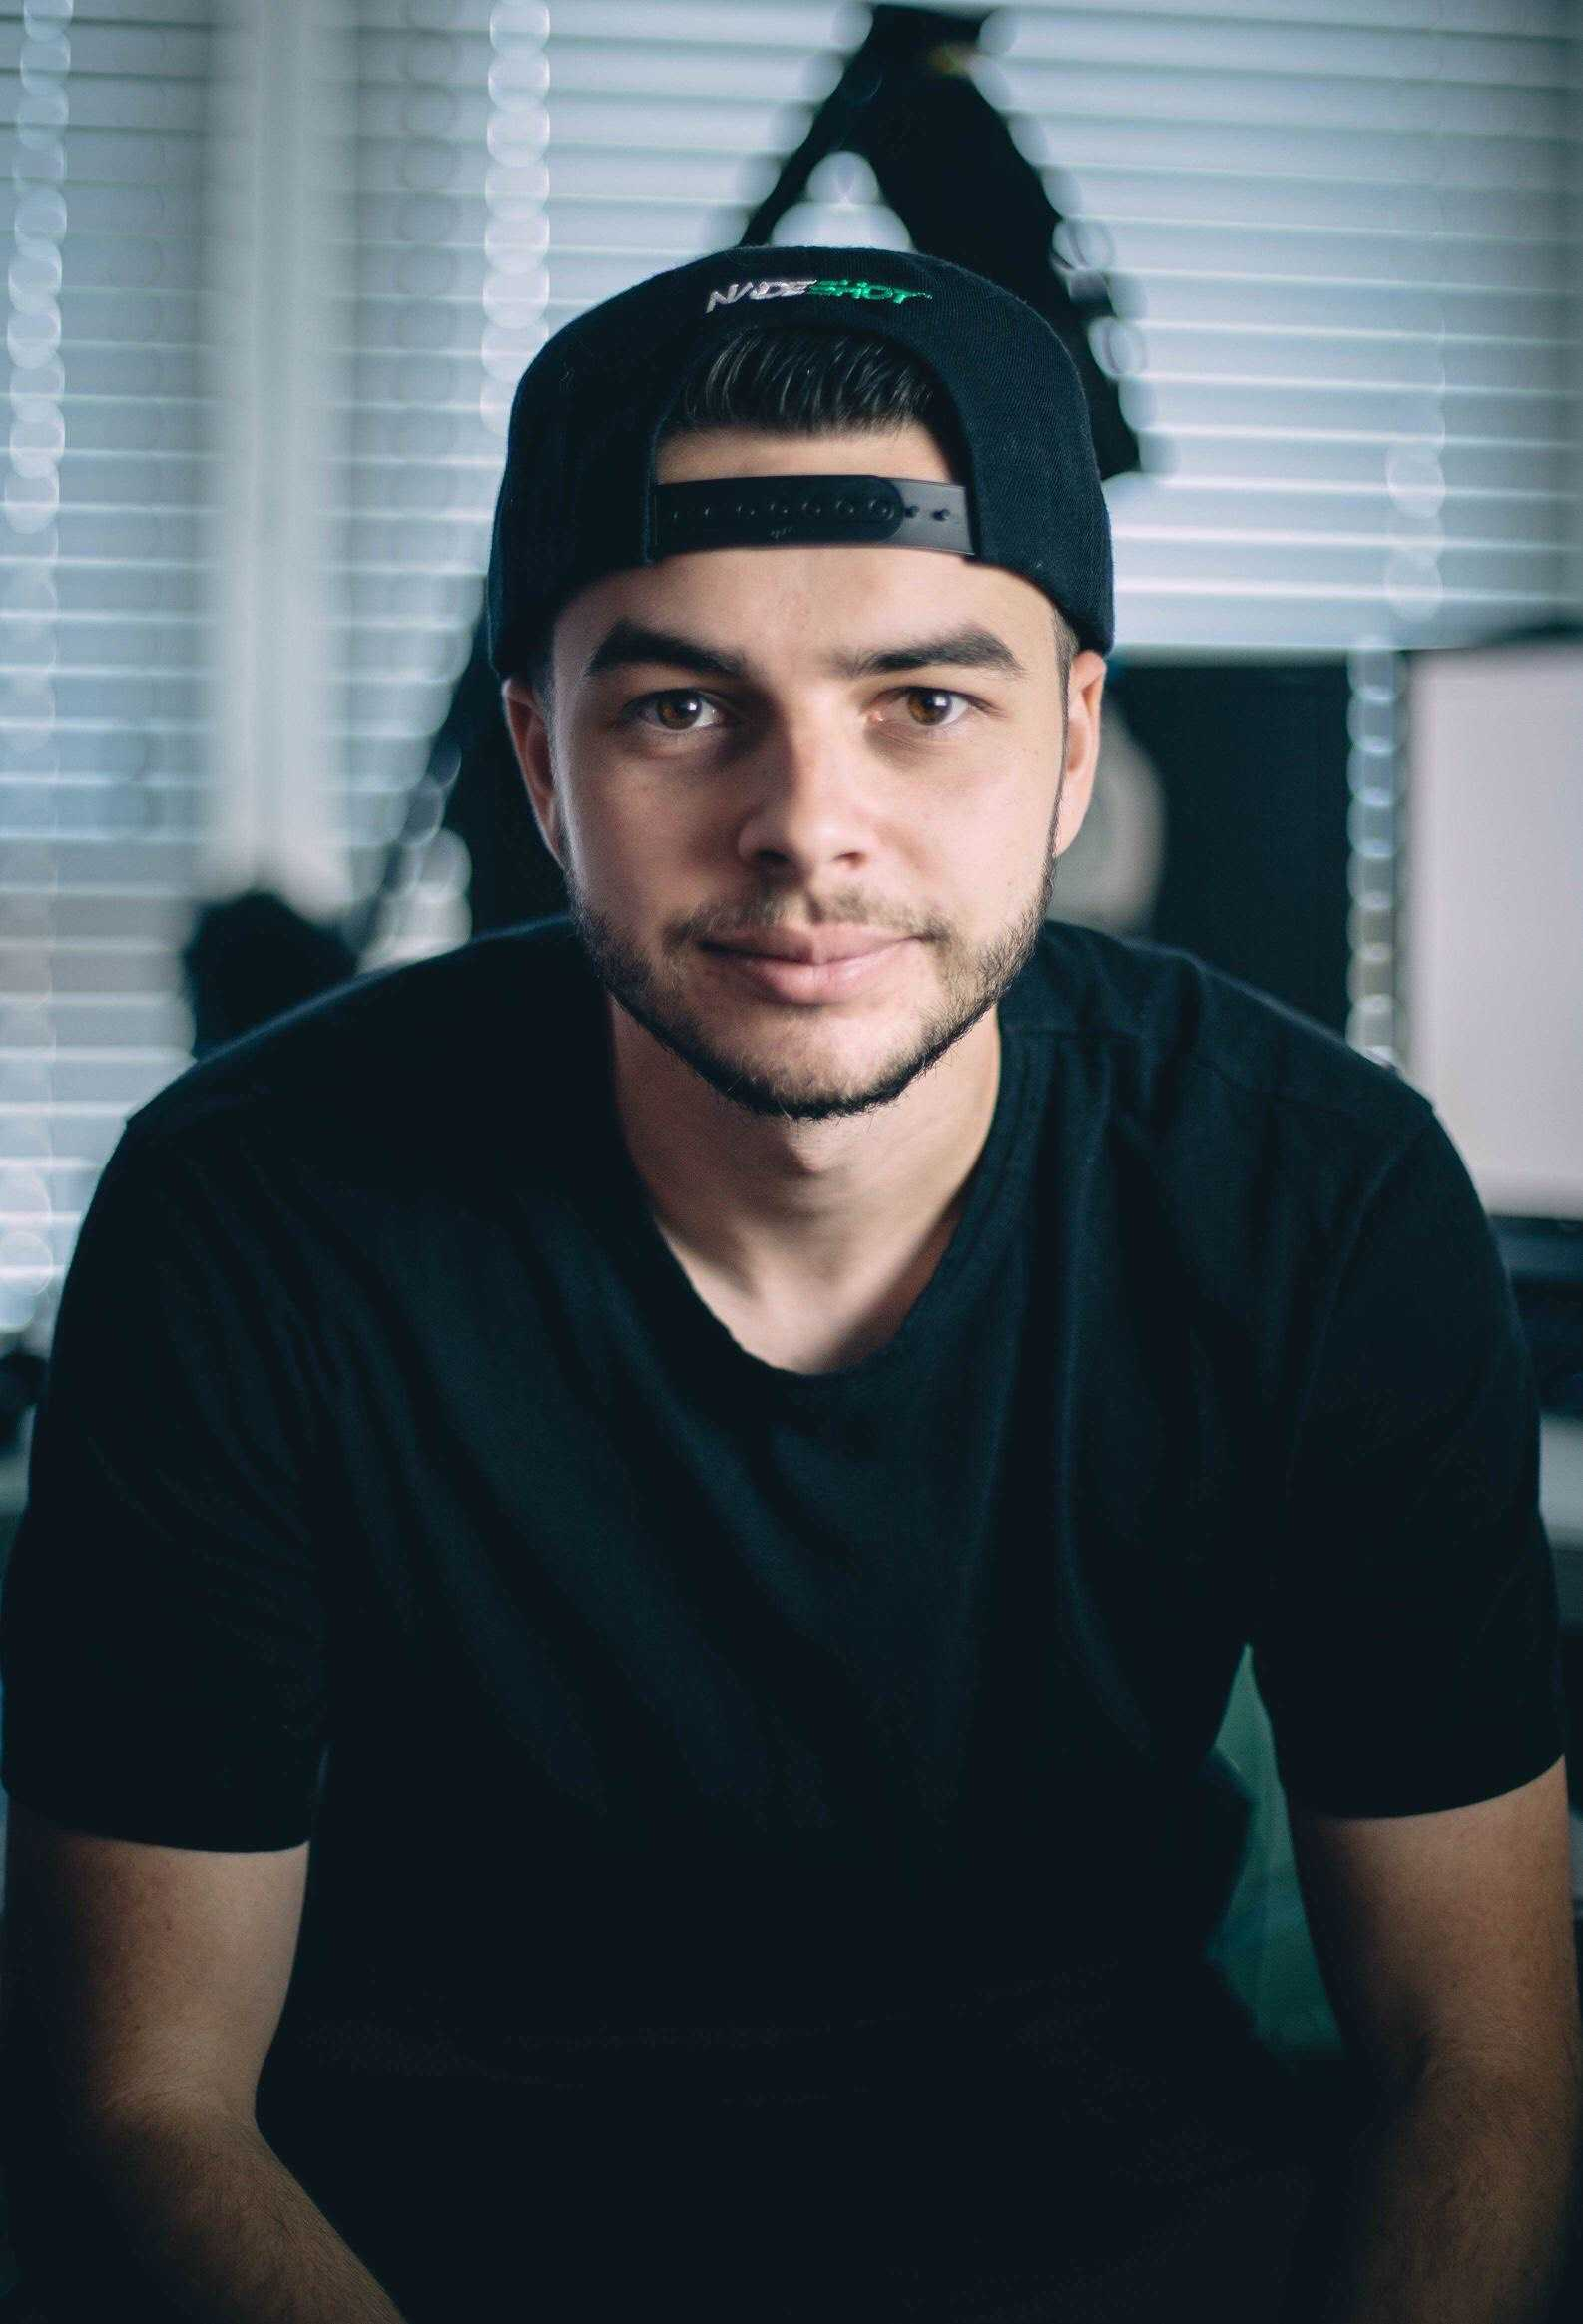 Nadeshot Chats Call Of Duty And 'Settle The Beef' | Nadeshot